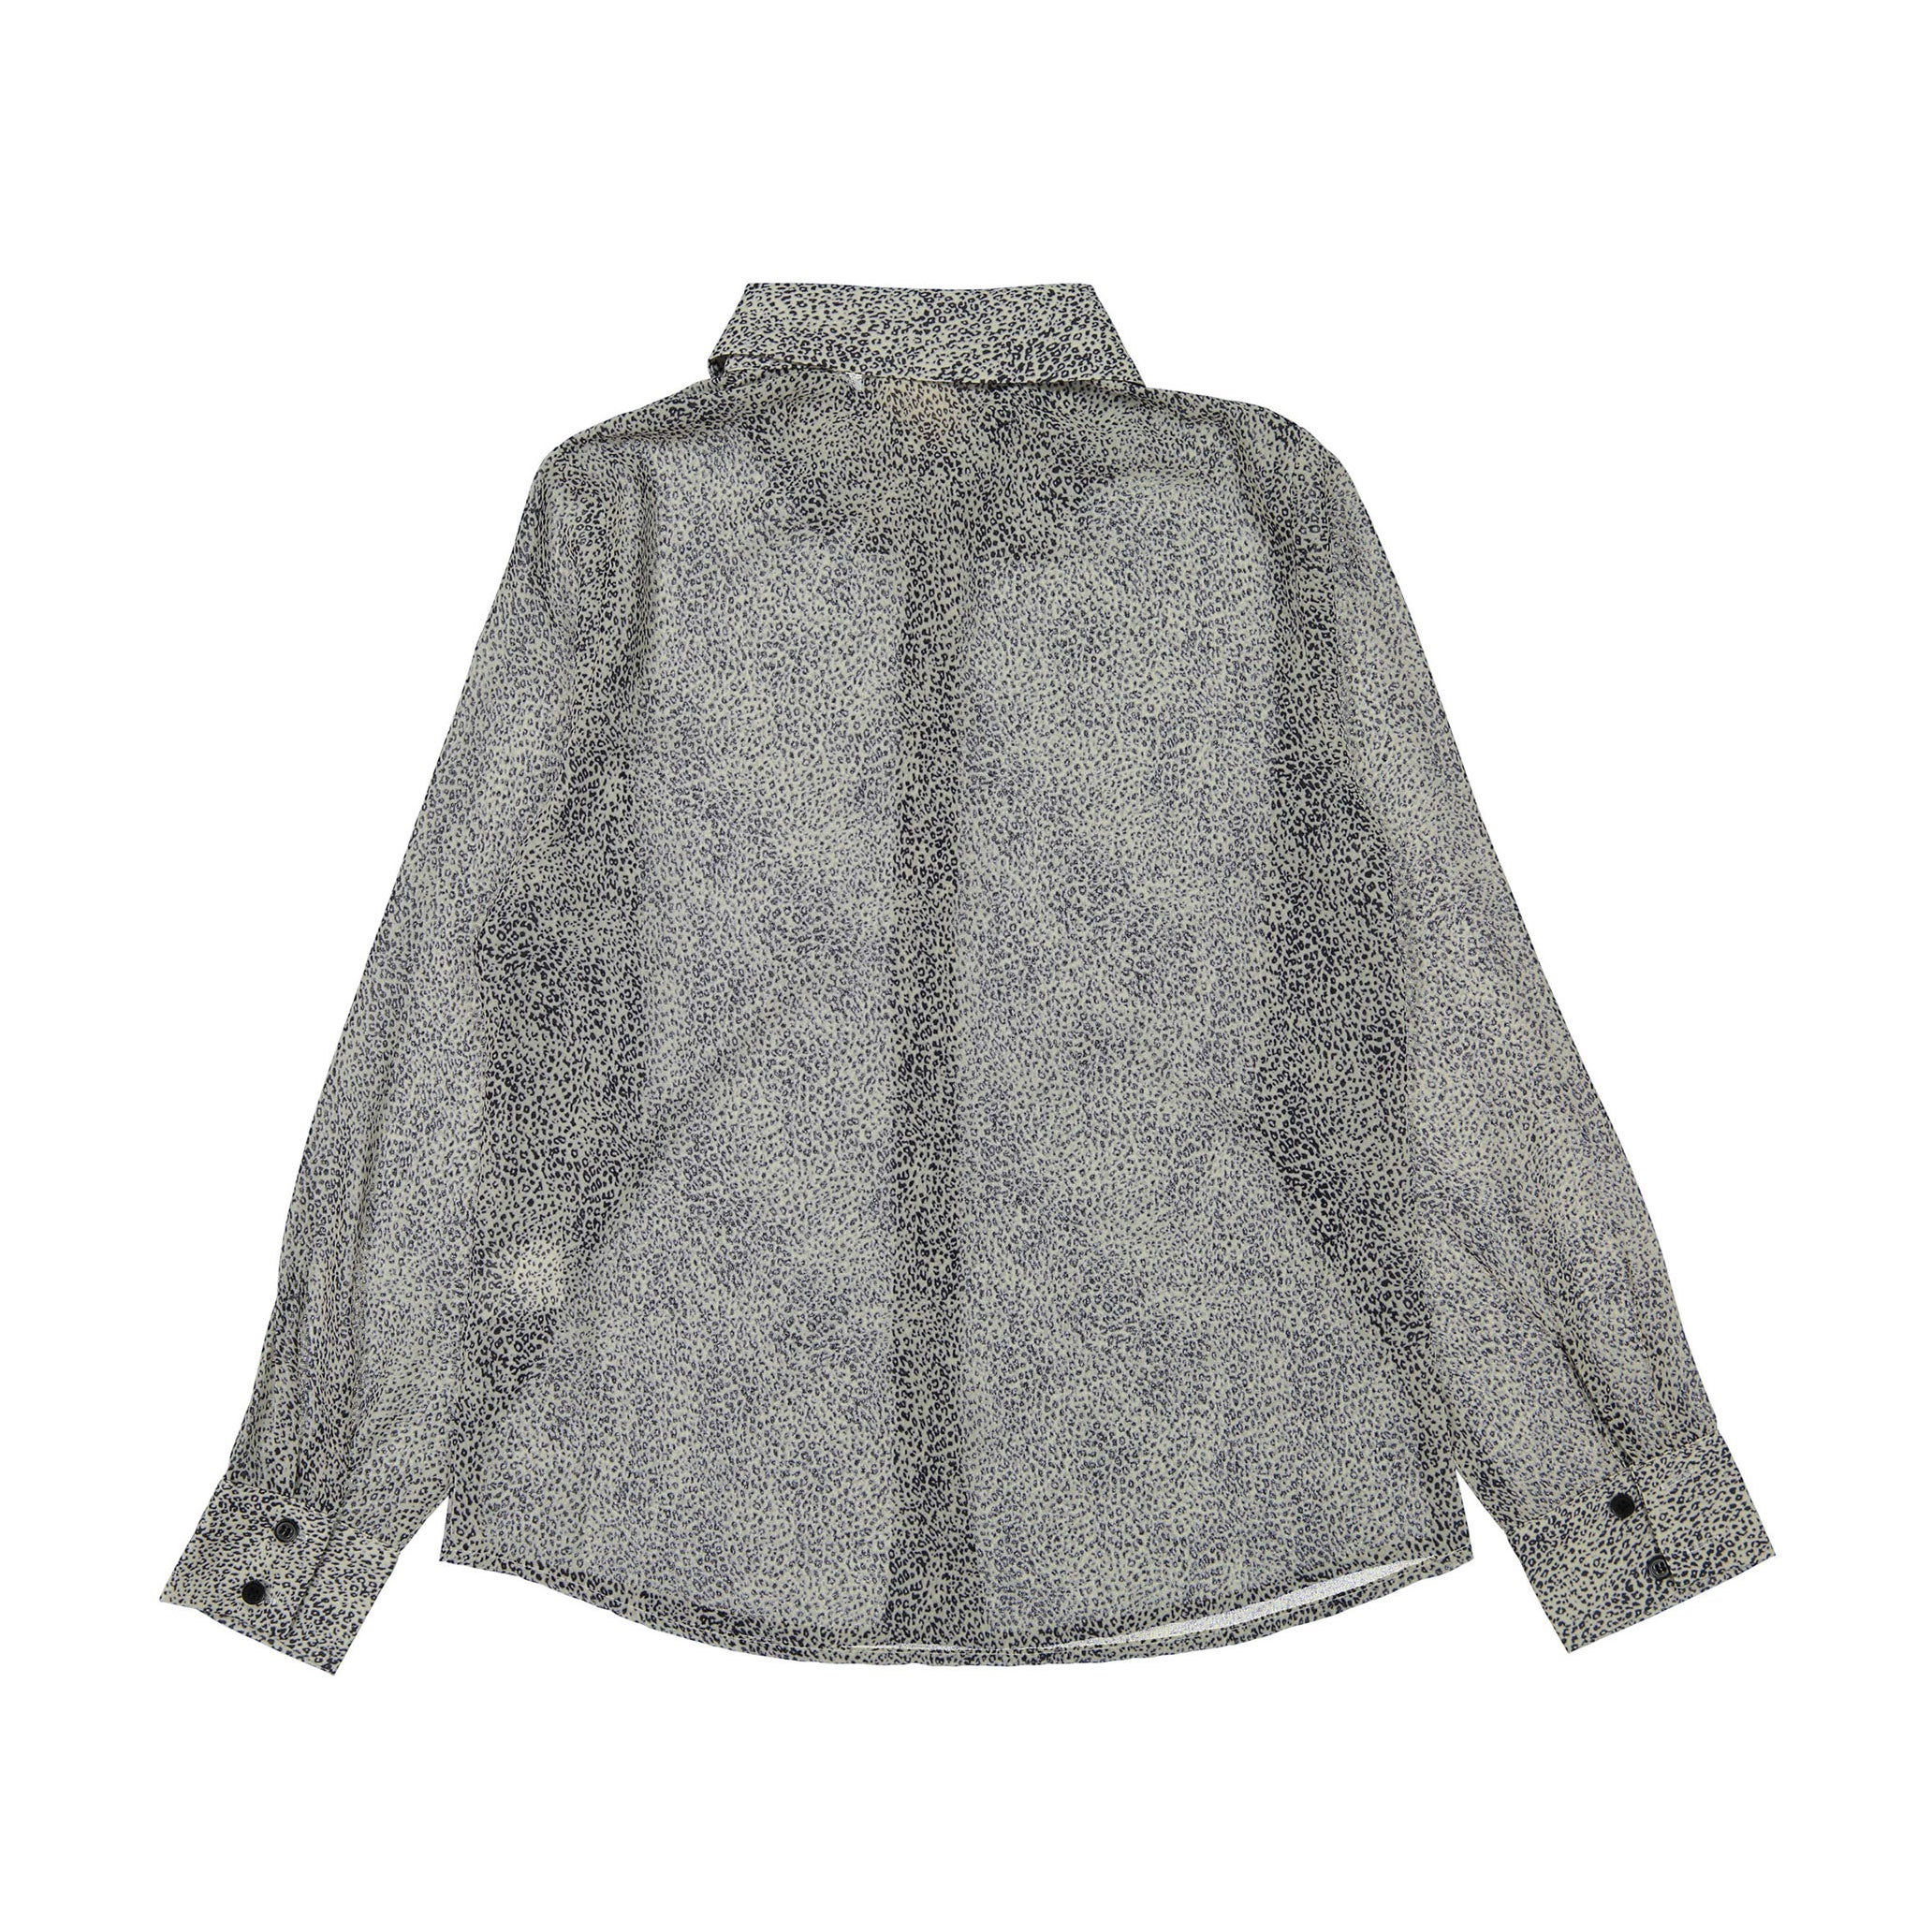 A4 Grey Leopard Blouse